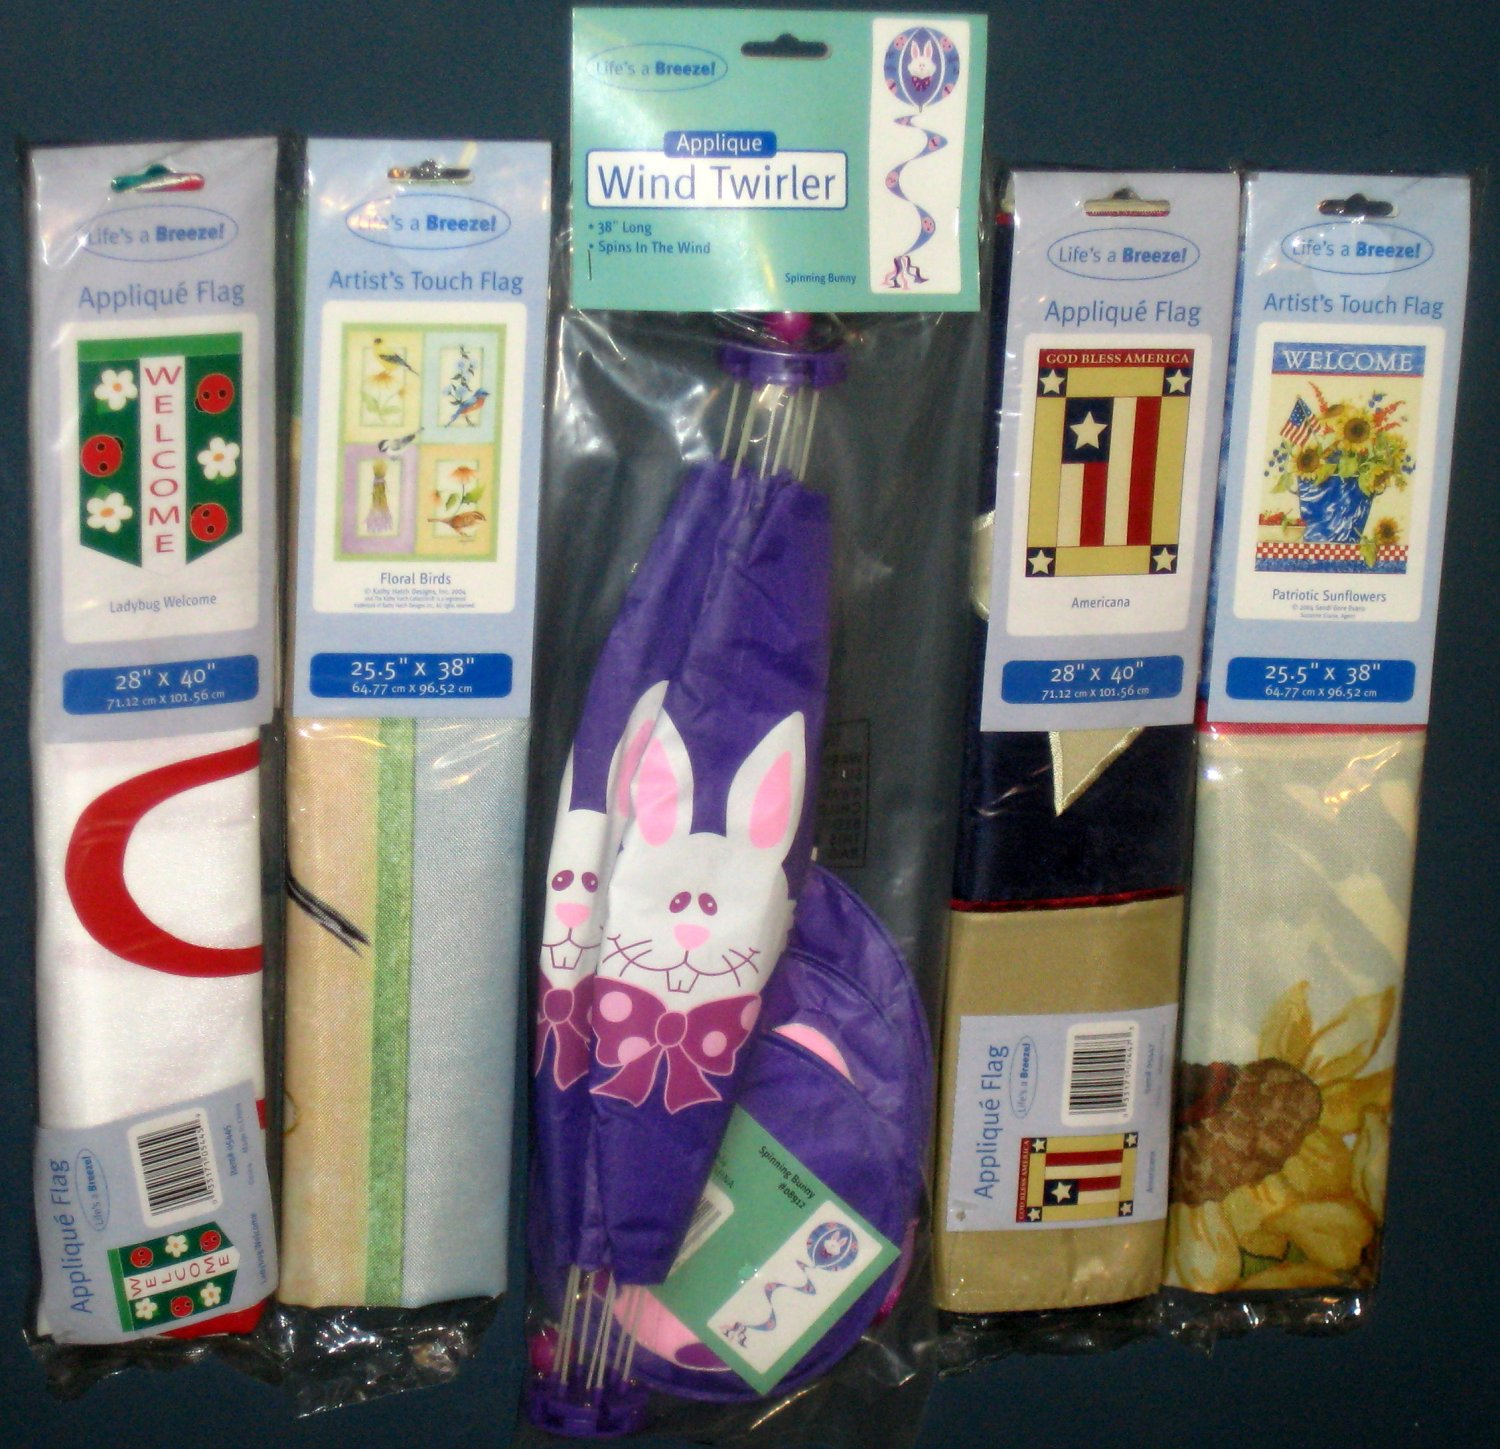 Lot 25 Decorative Garden Flags (4) + Wind Twirler Spinner Floral Birds Ladybug Easter Patriotic NIP